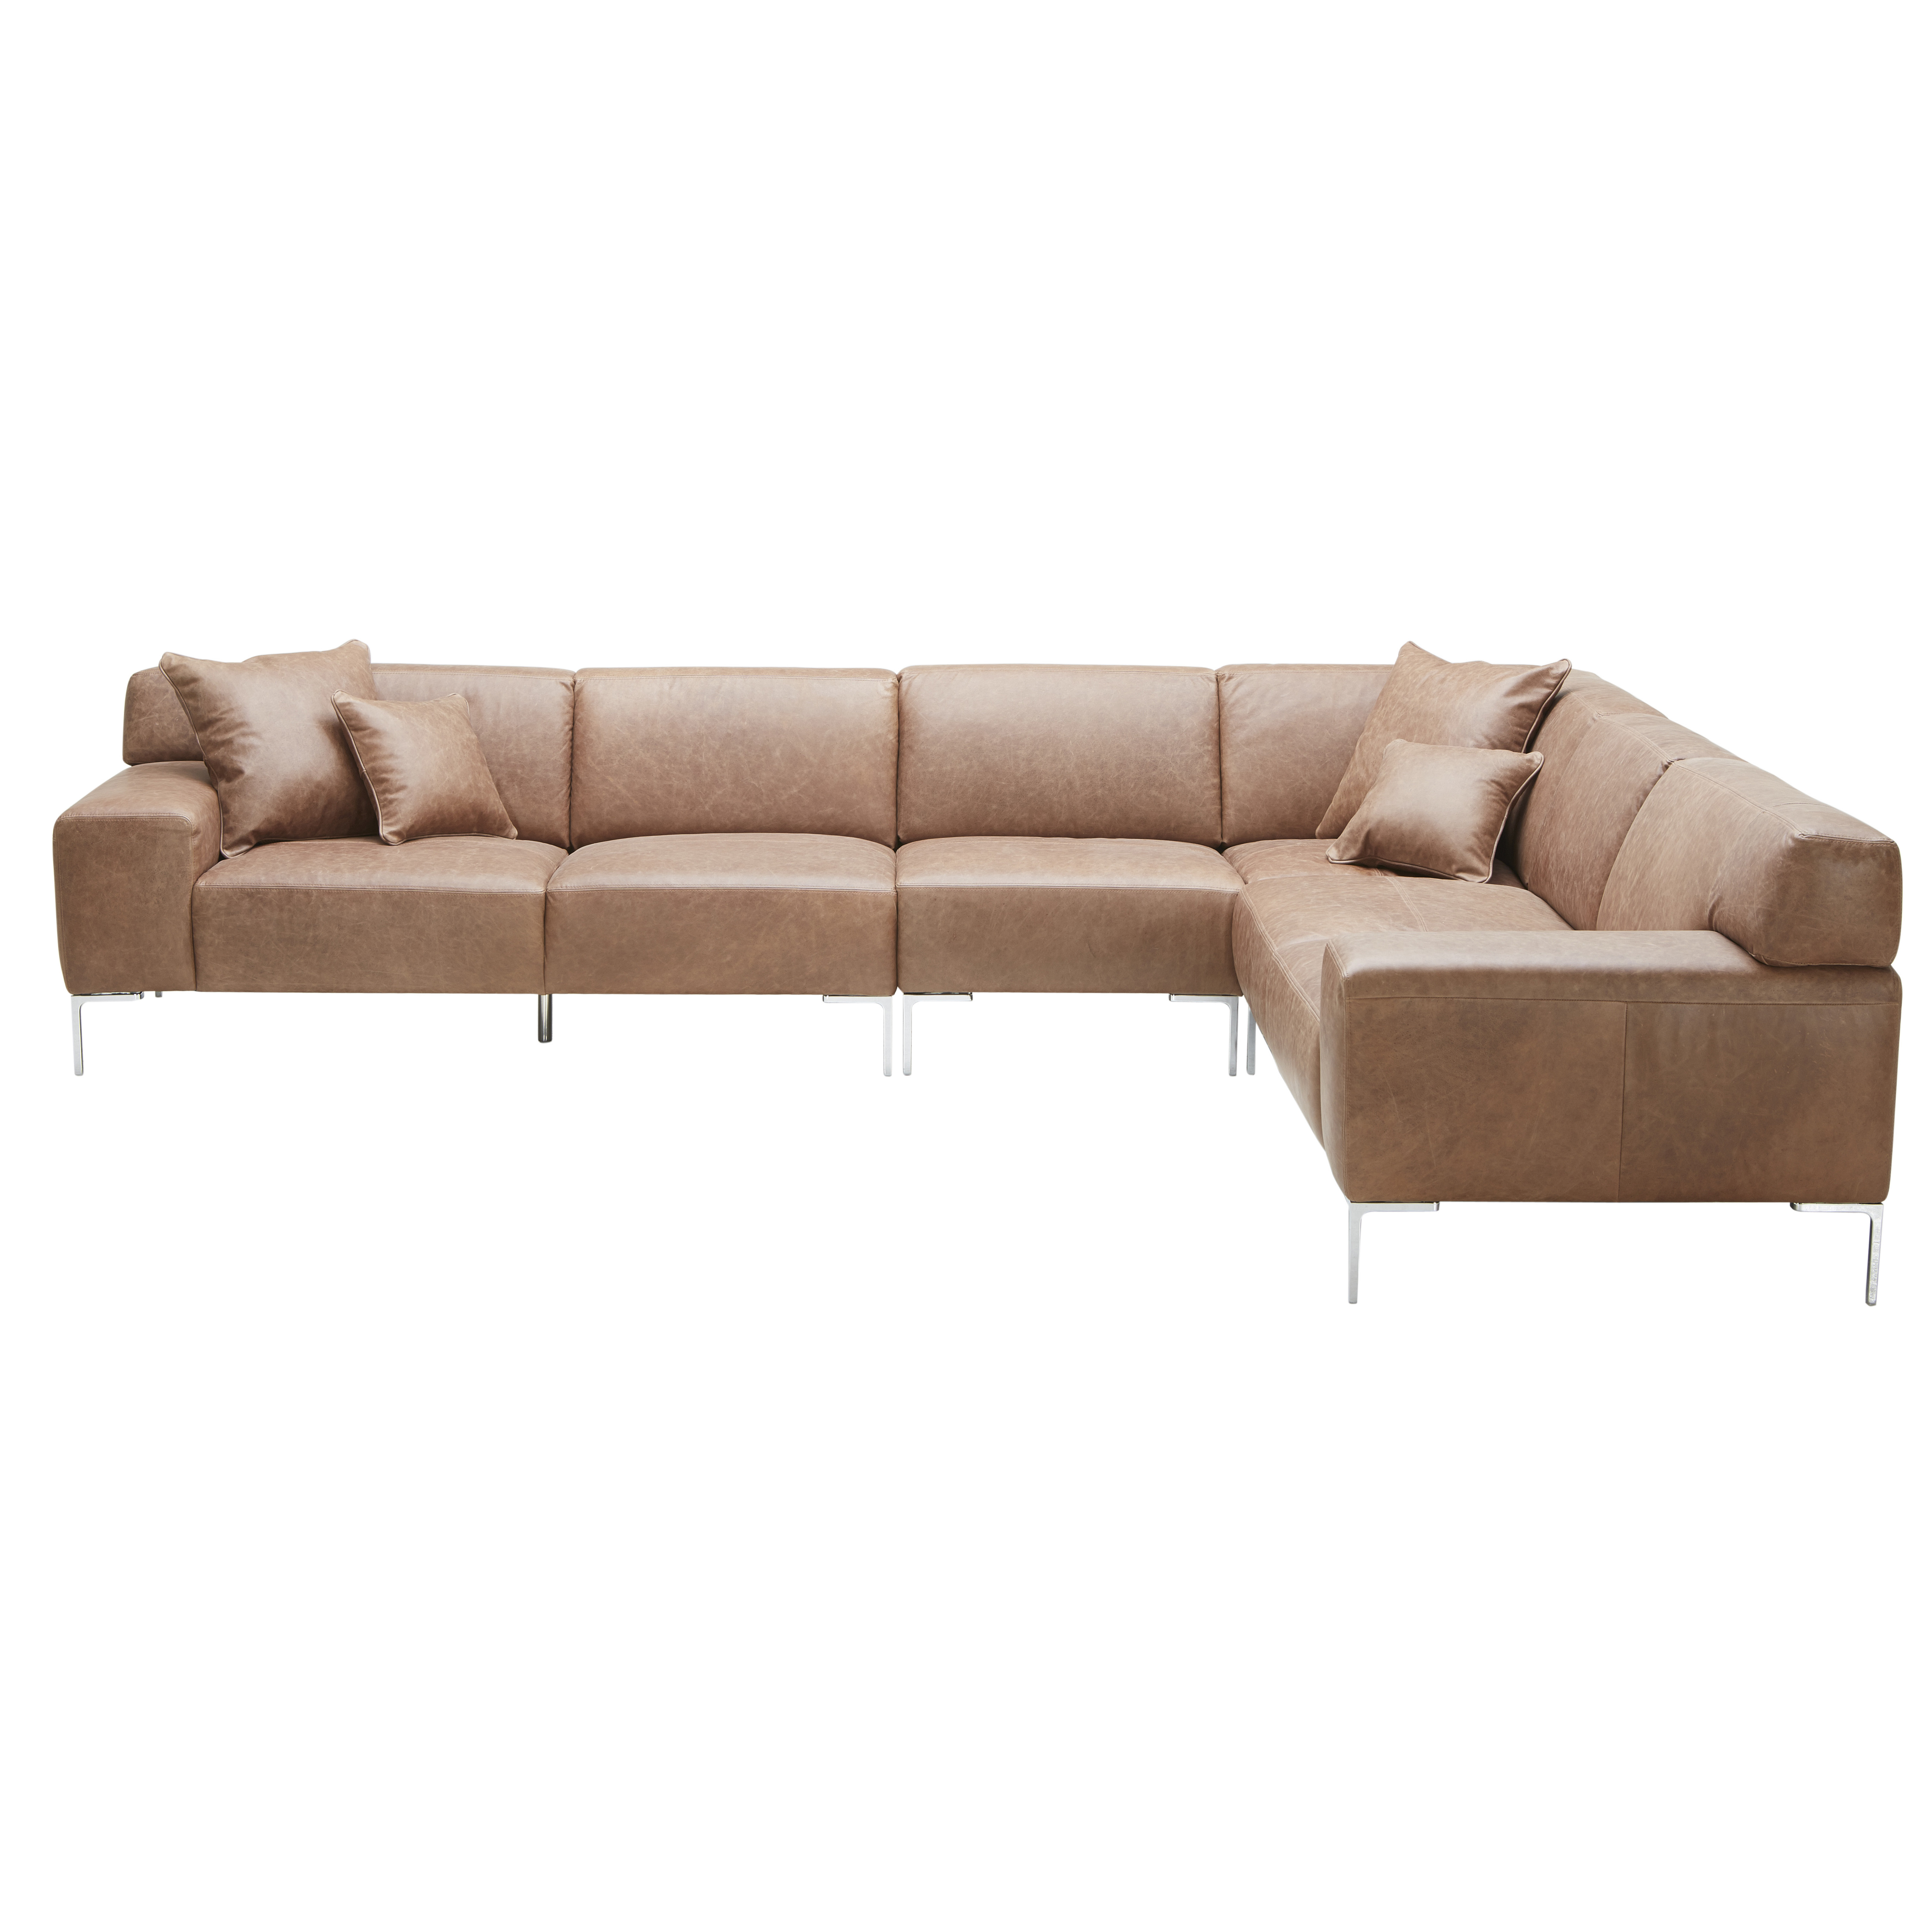 Cheap Sectional Couches | Sectional Sofas with Recliners | Cheap Sectional